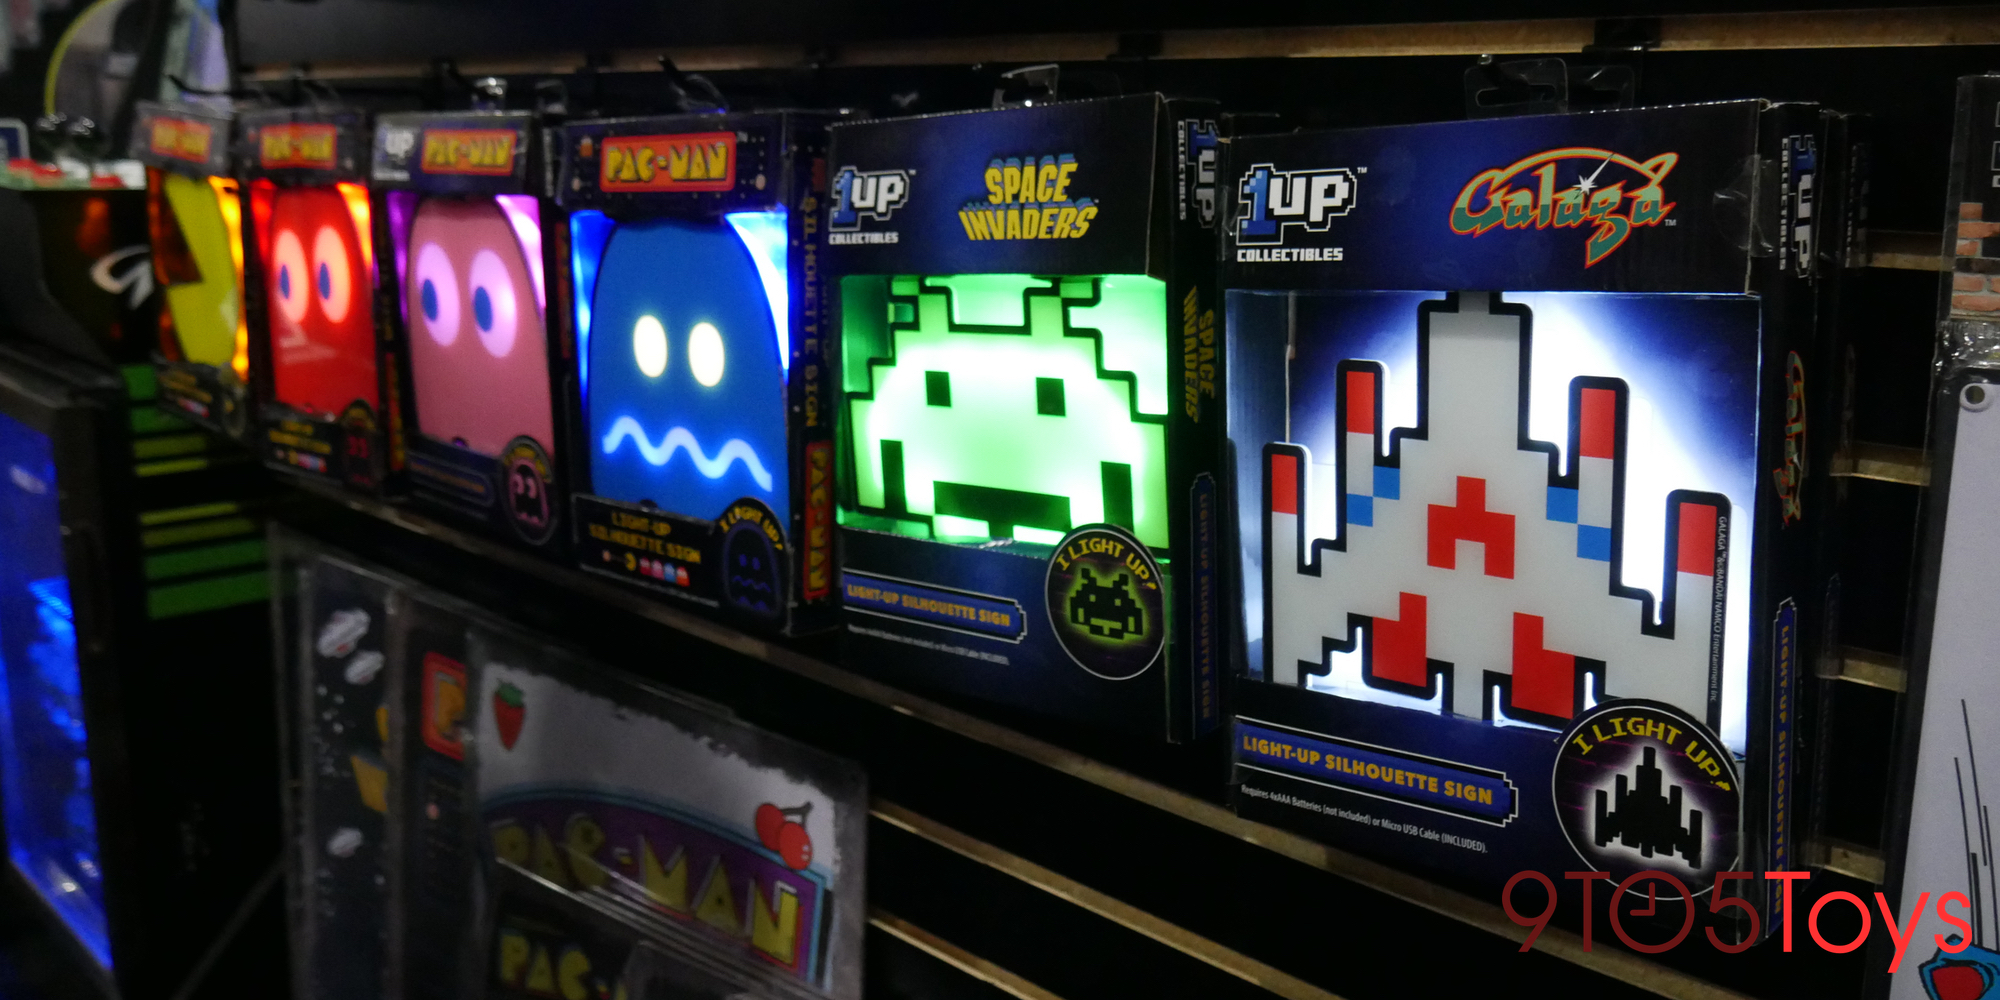 Arcade1Up Retro Lights